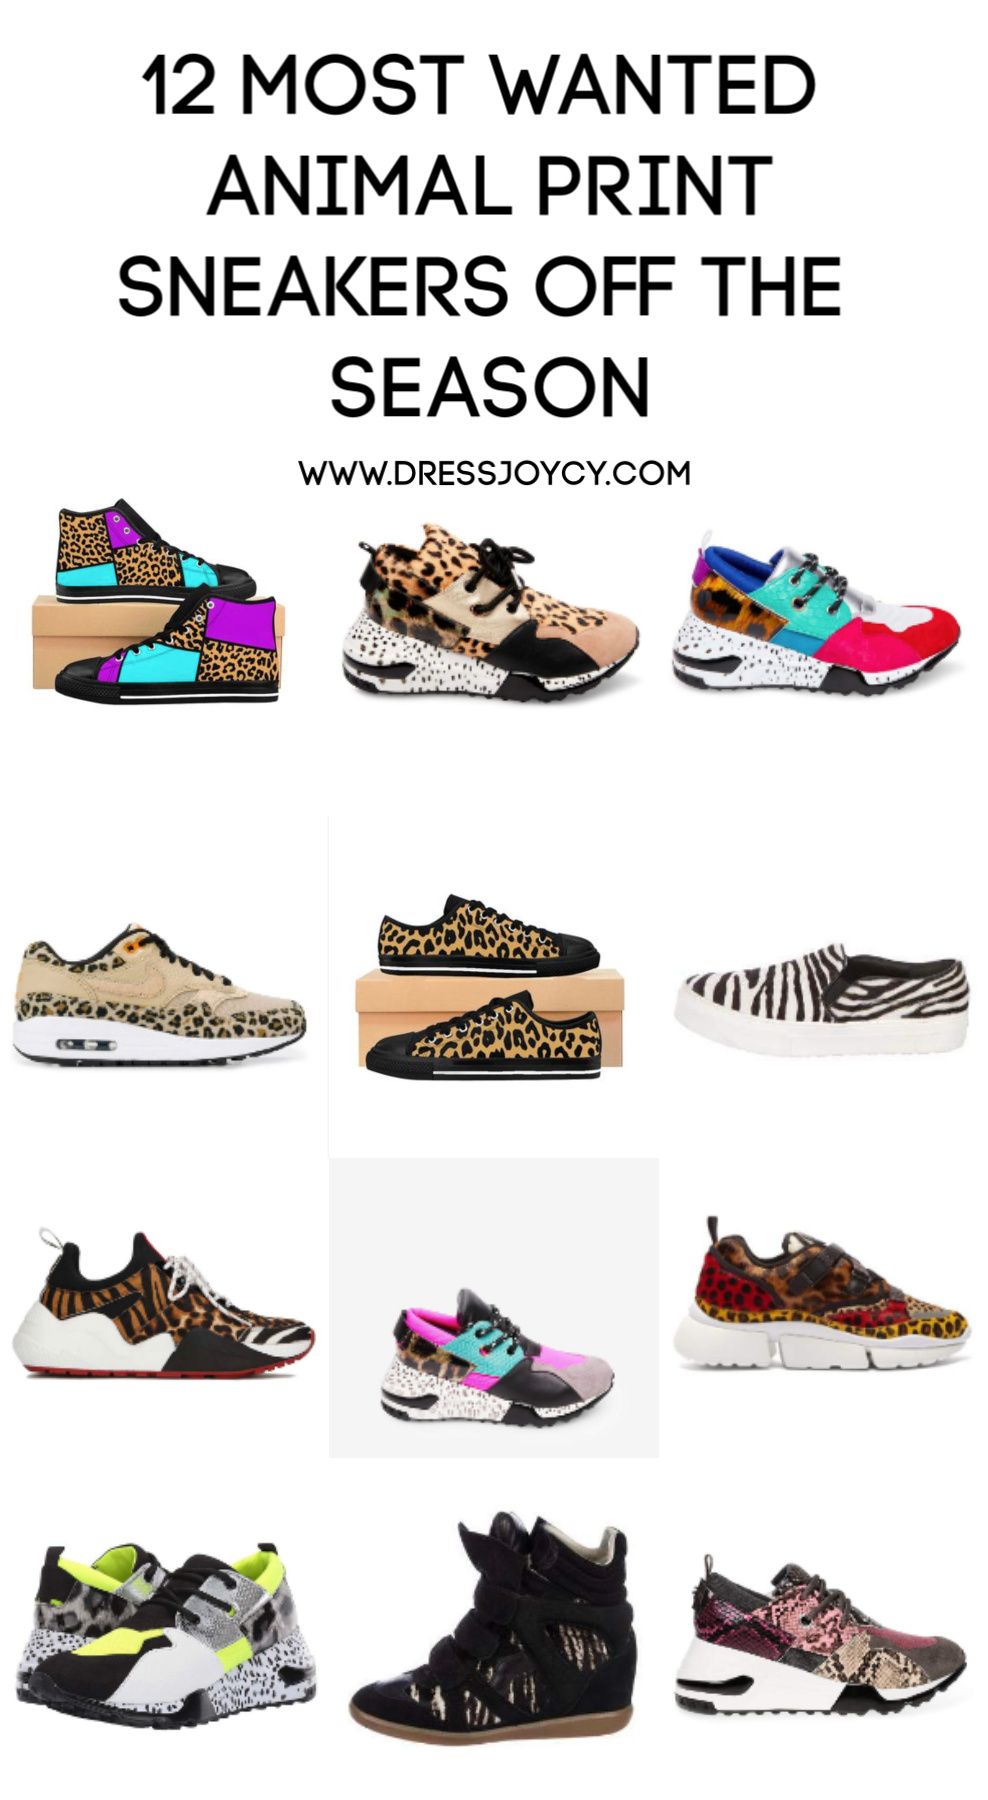 Most Wanted Animal Print Sneakers off